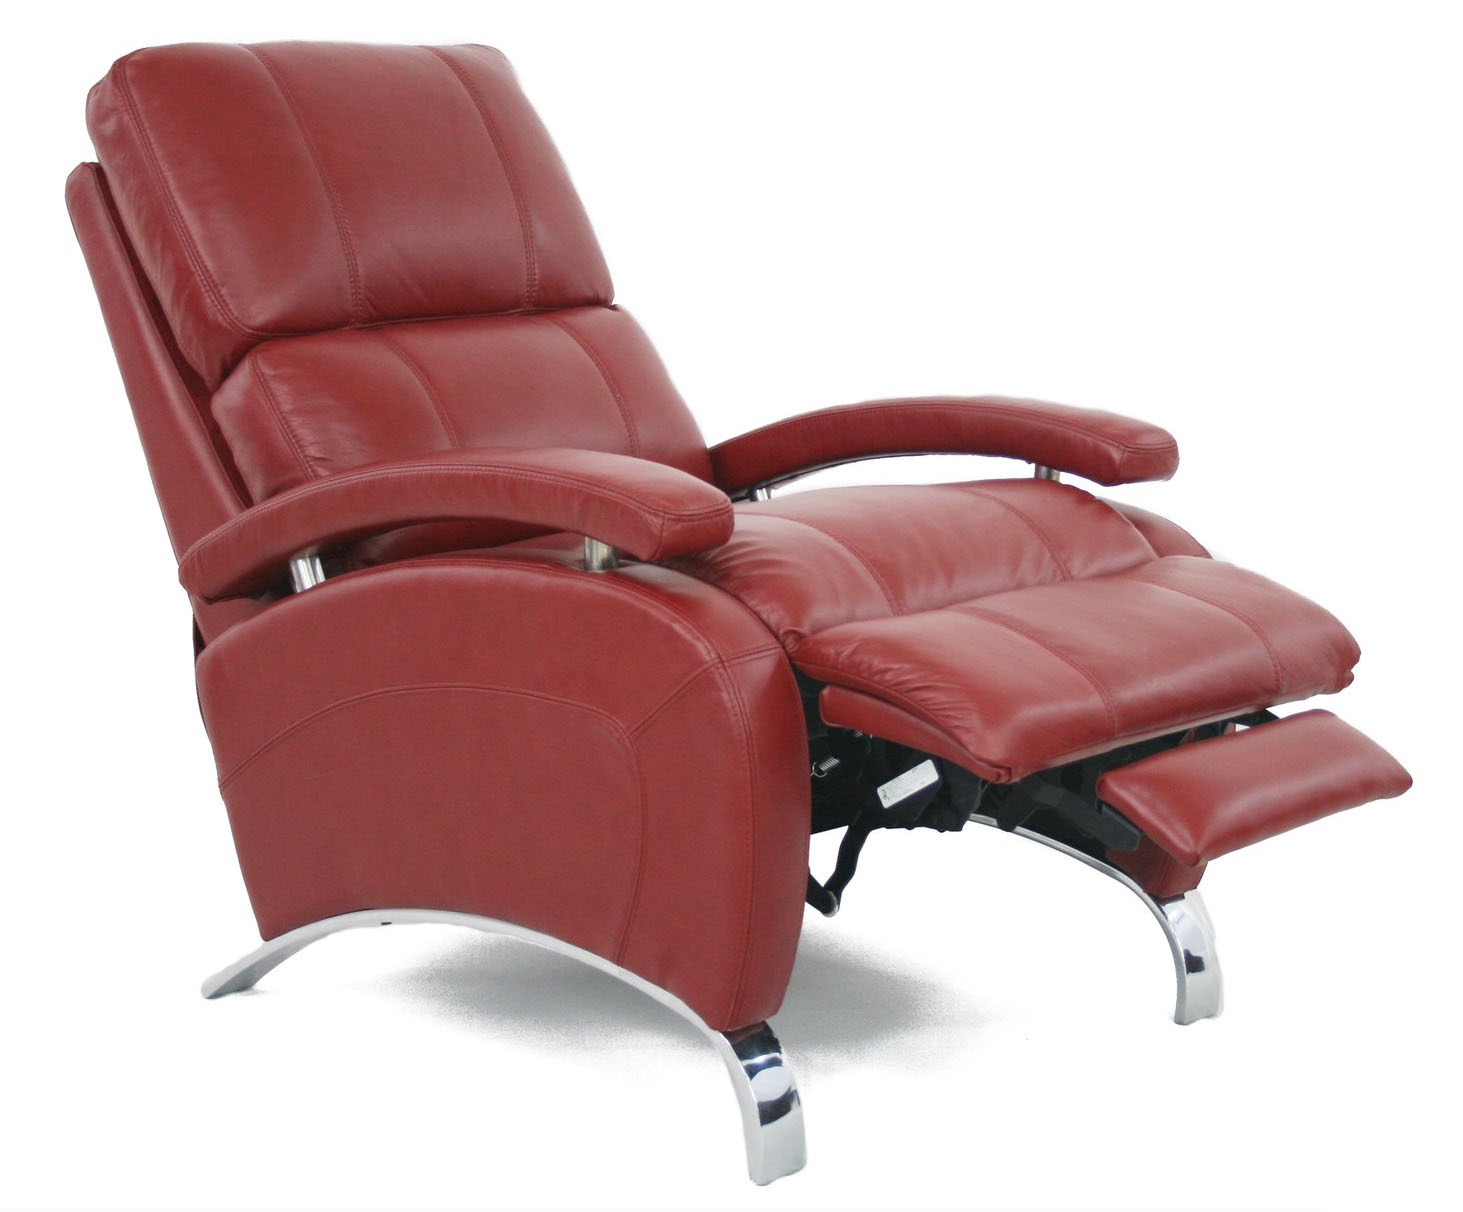 Barcalounger Oracle II Recliner Chair Leather Recliner Chair Furniture Lo